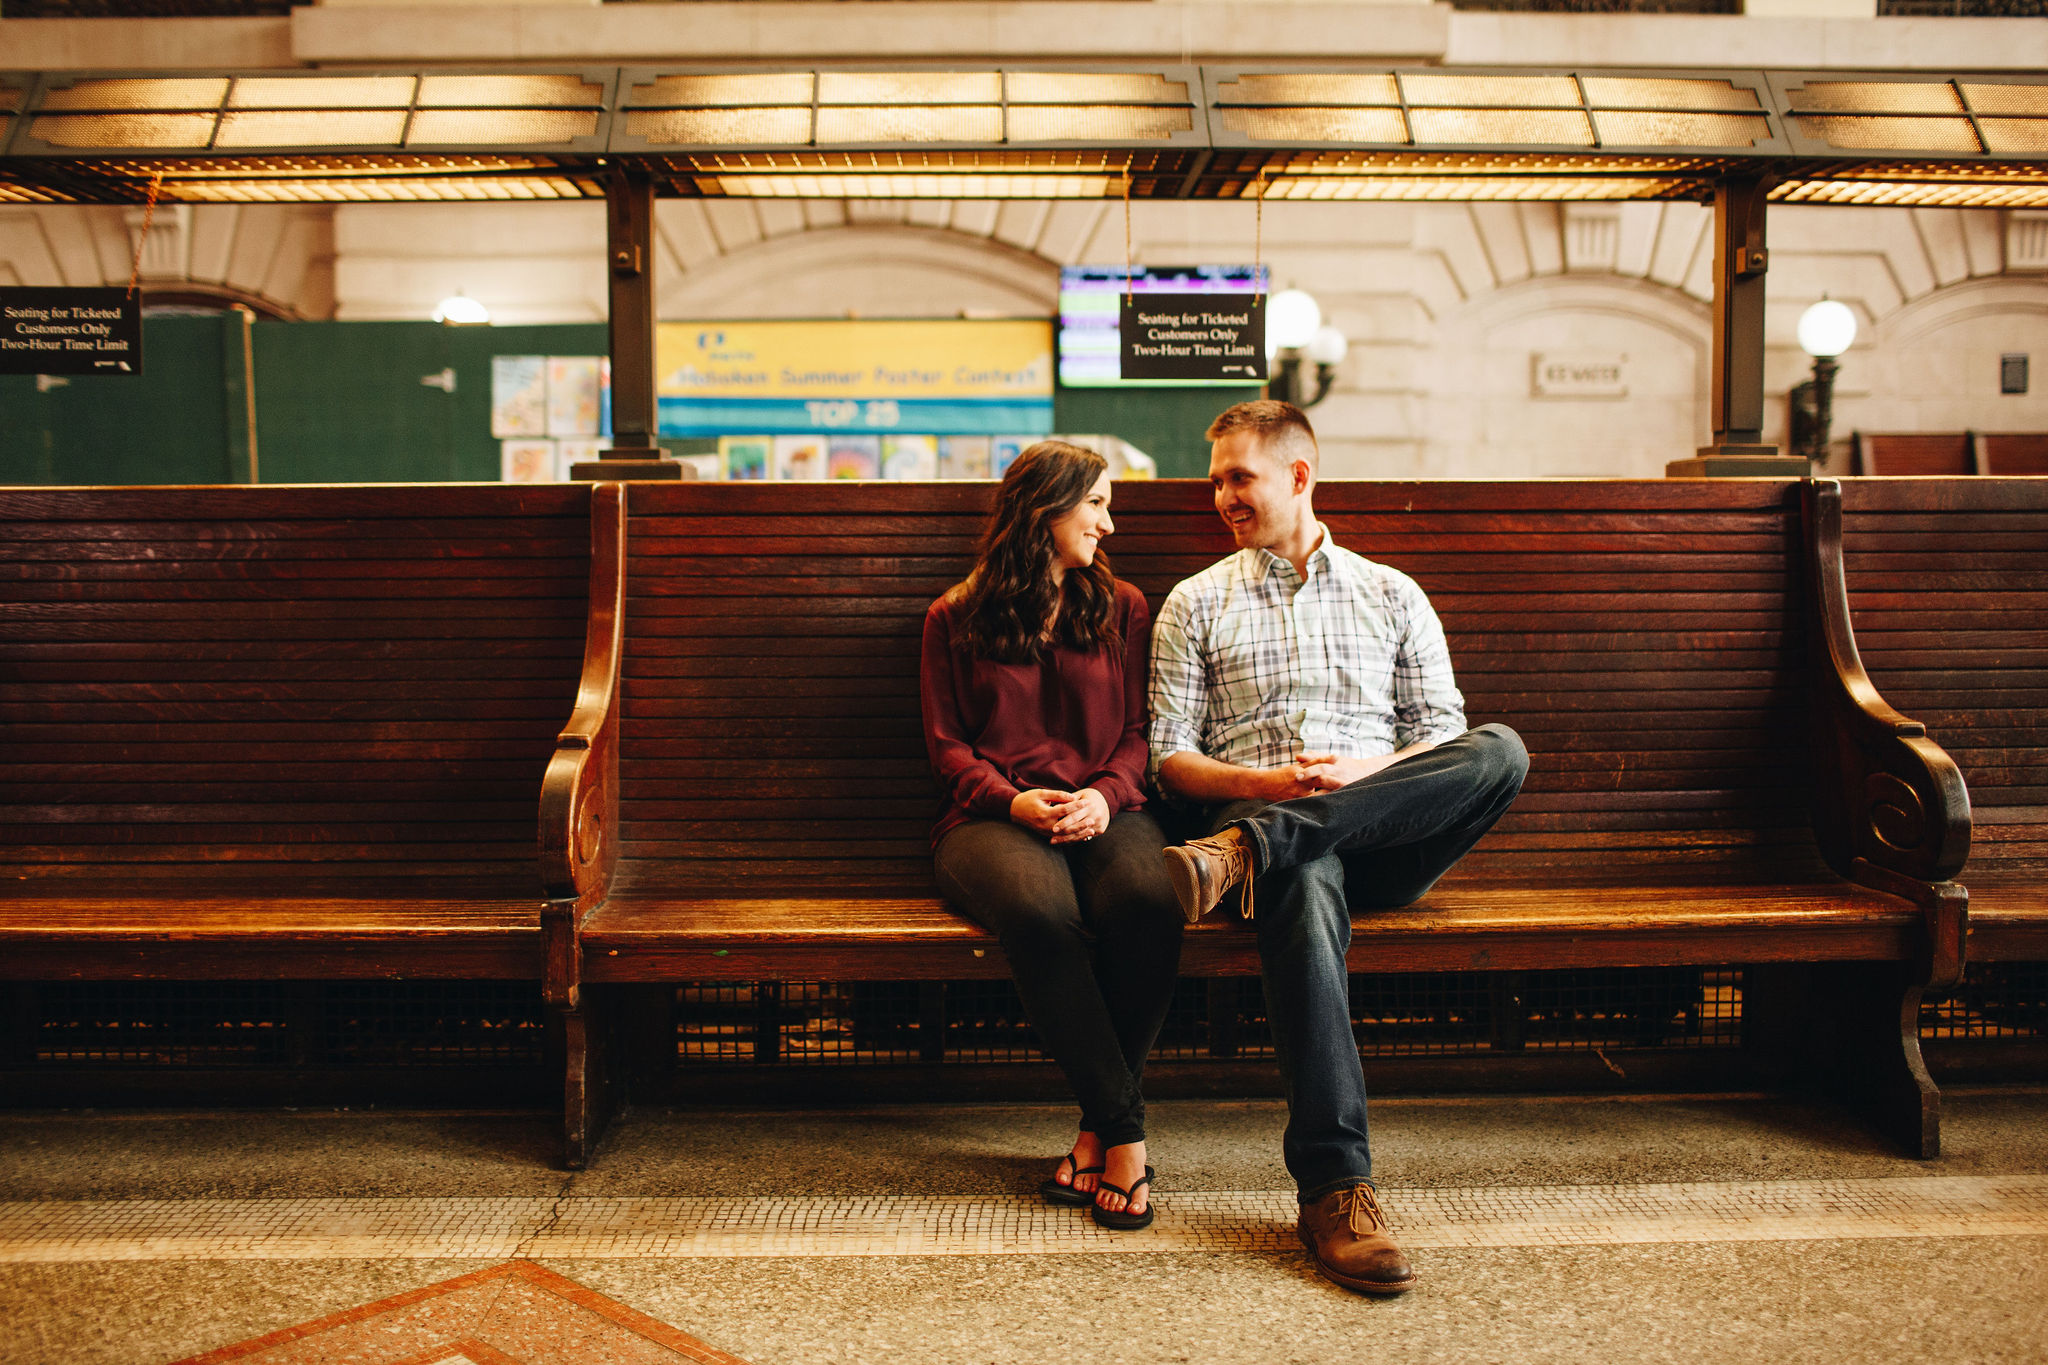 hoboken train station engagement